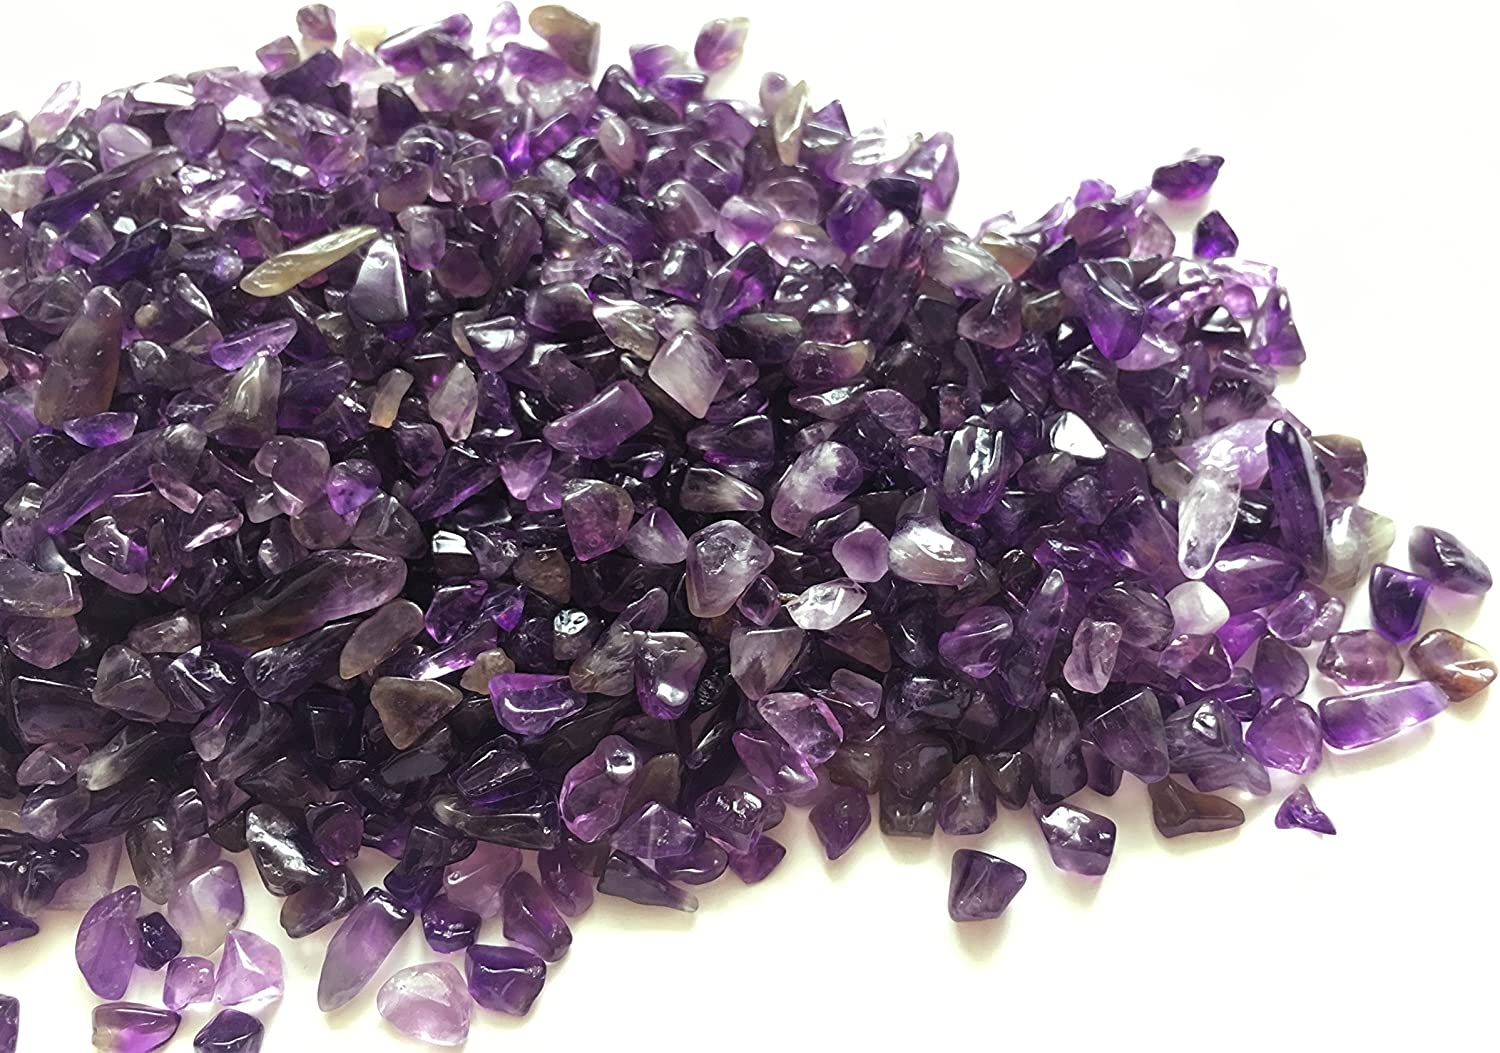 rockcloud 1 lb Amethyst Small Tumbled Chips Crushed Stone Healing Reiki Crystal